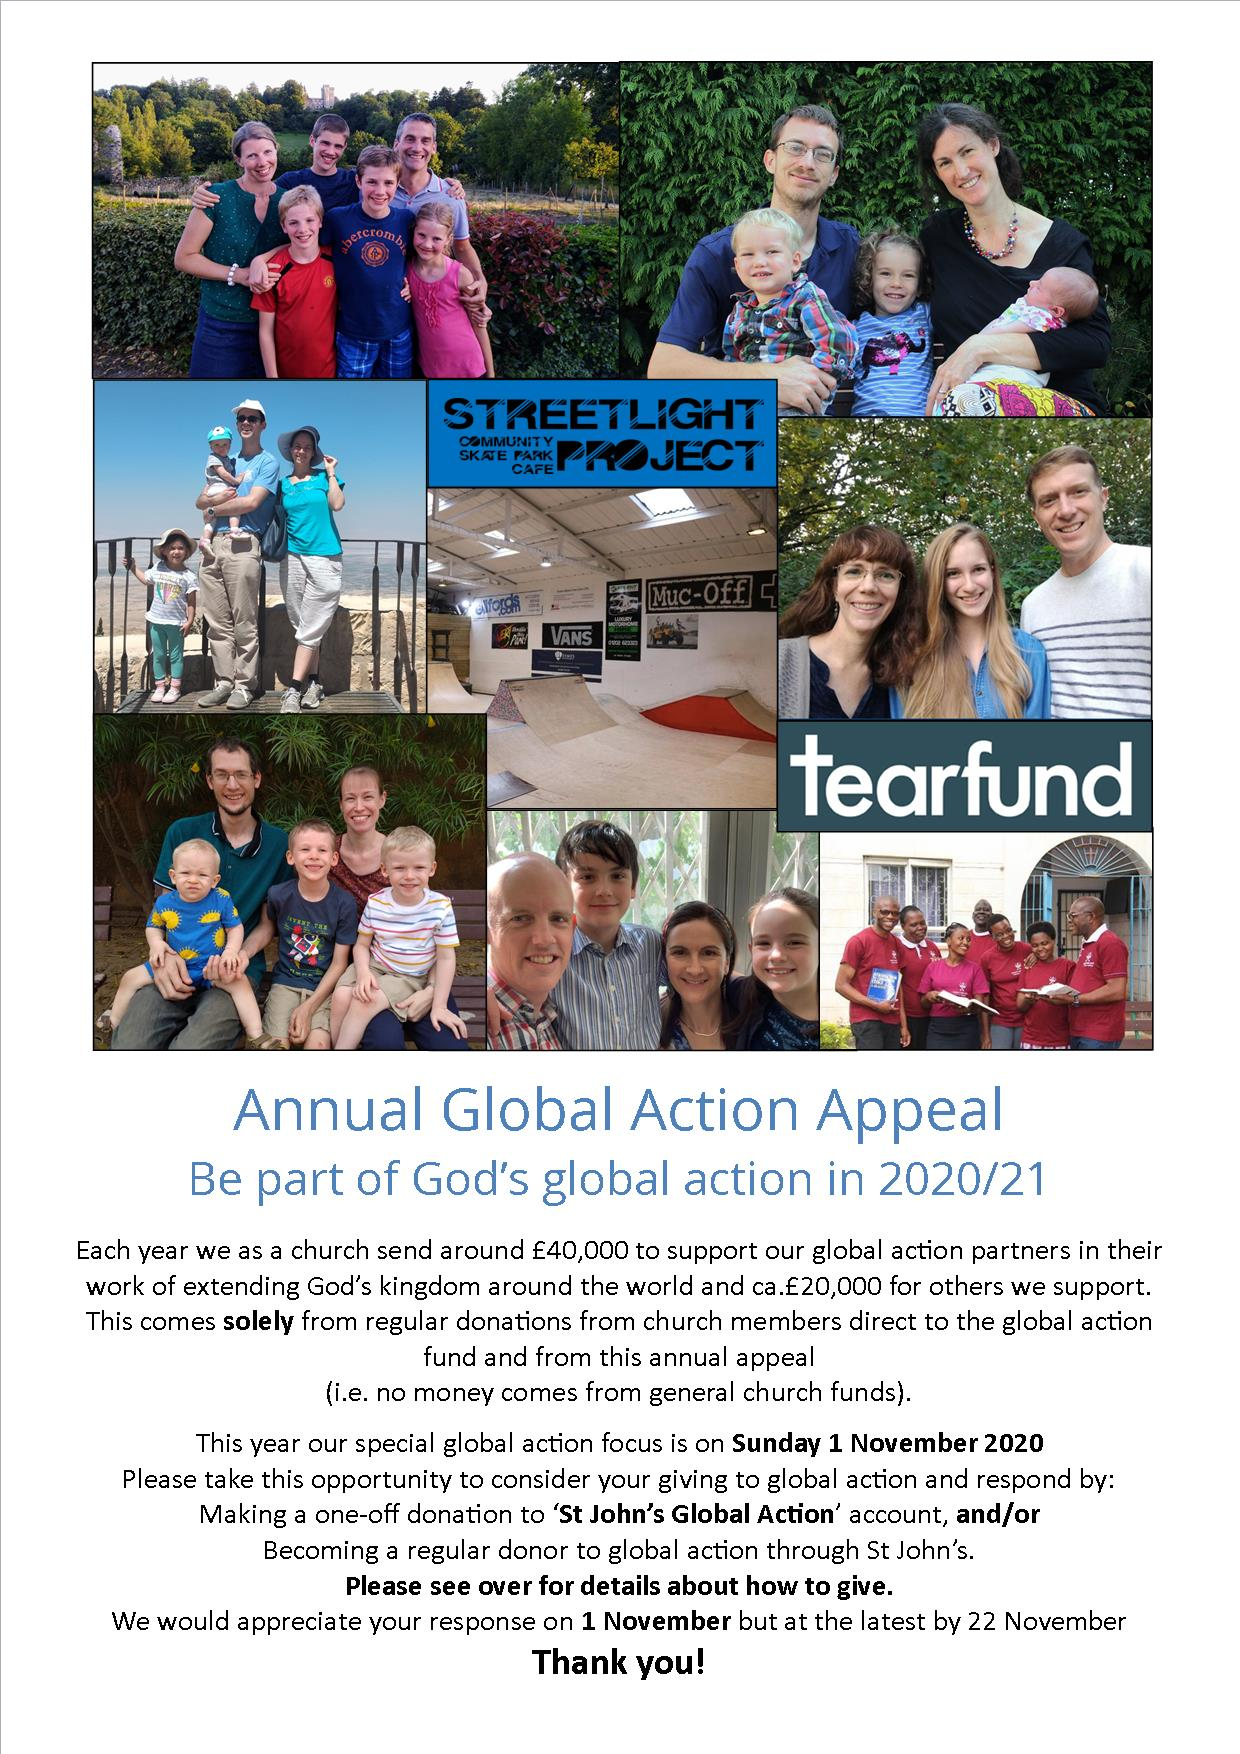 Global Action Appeal Leaflet 2020-21 pdf icon